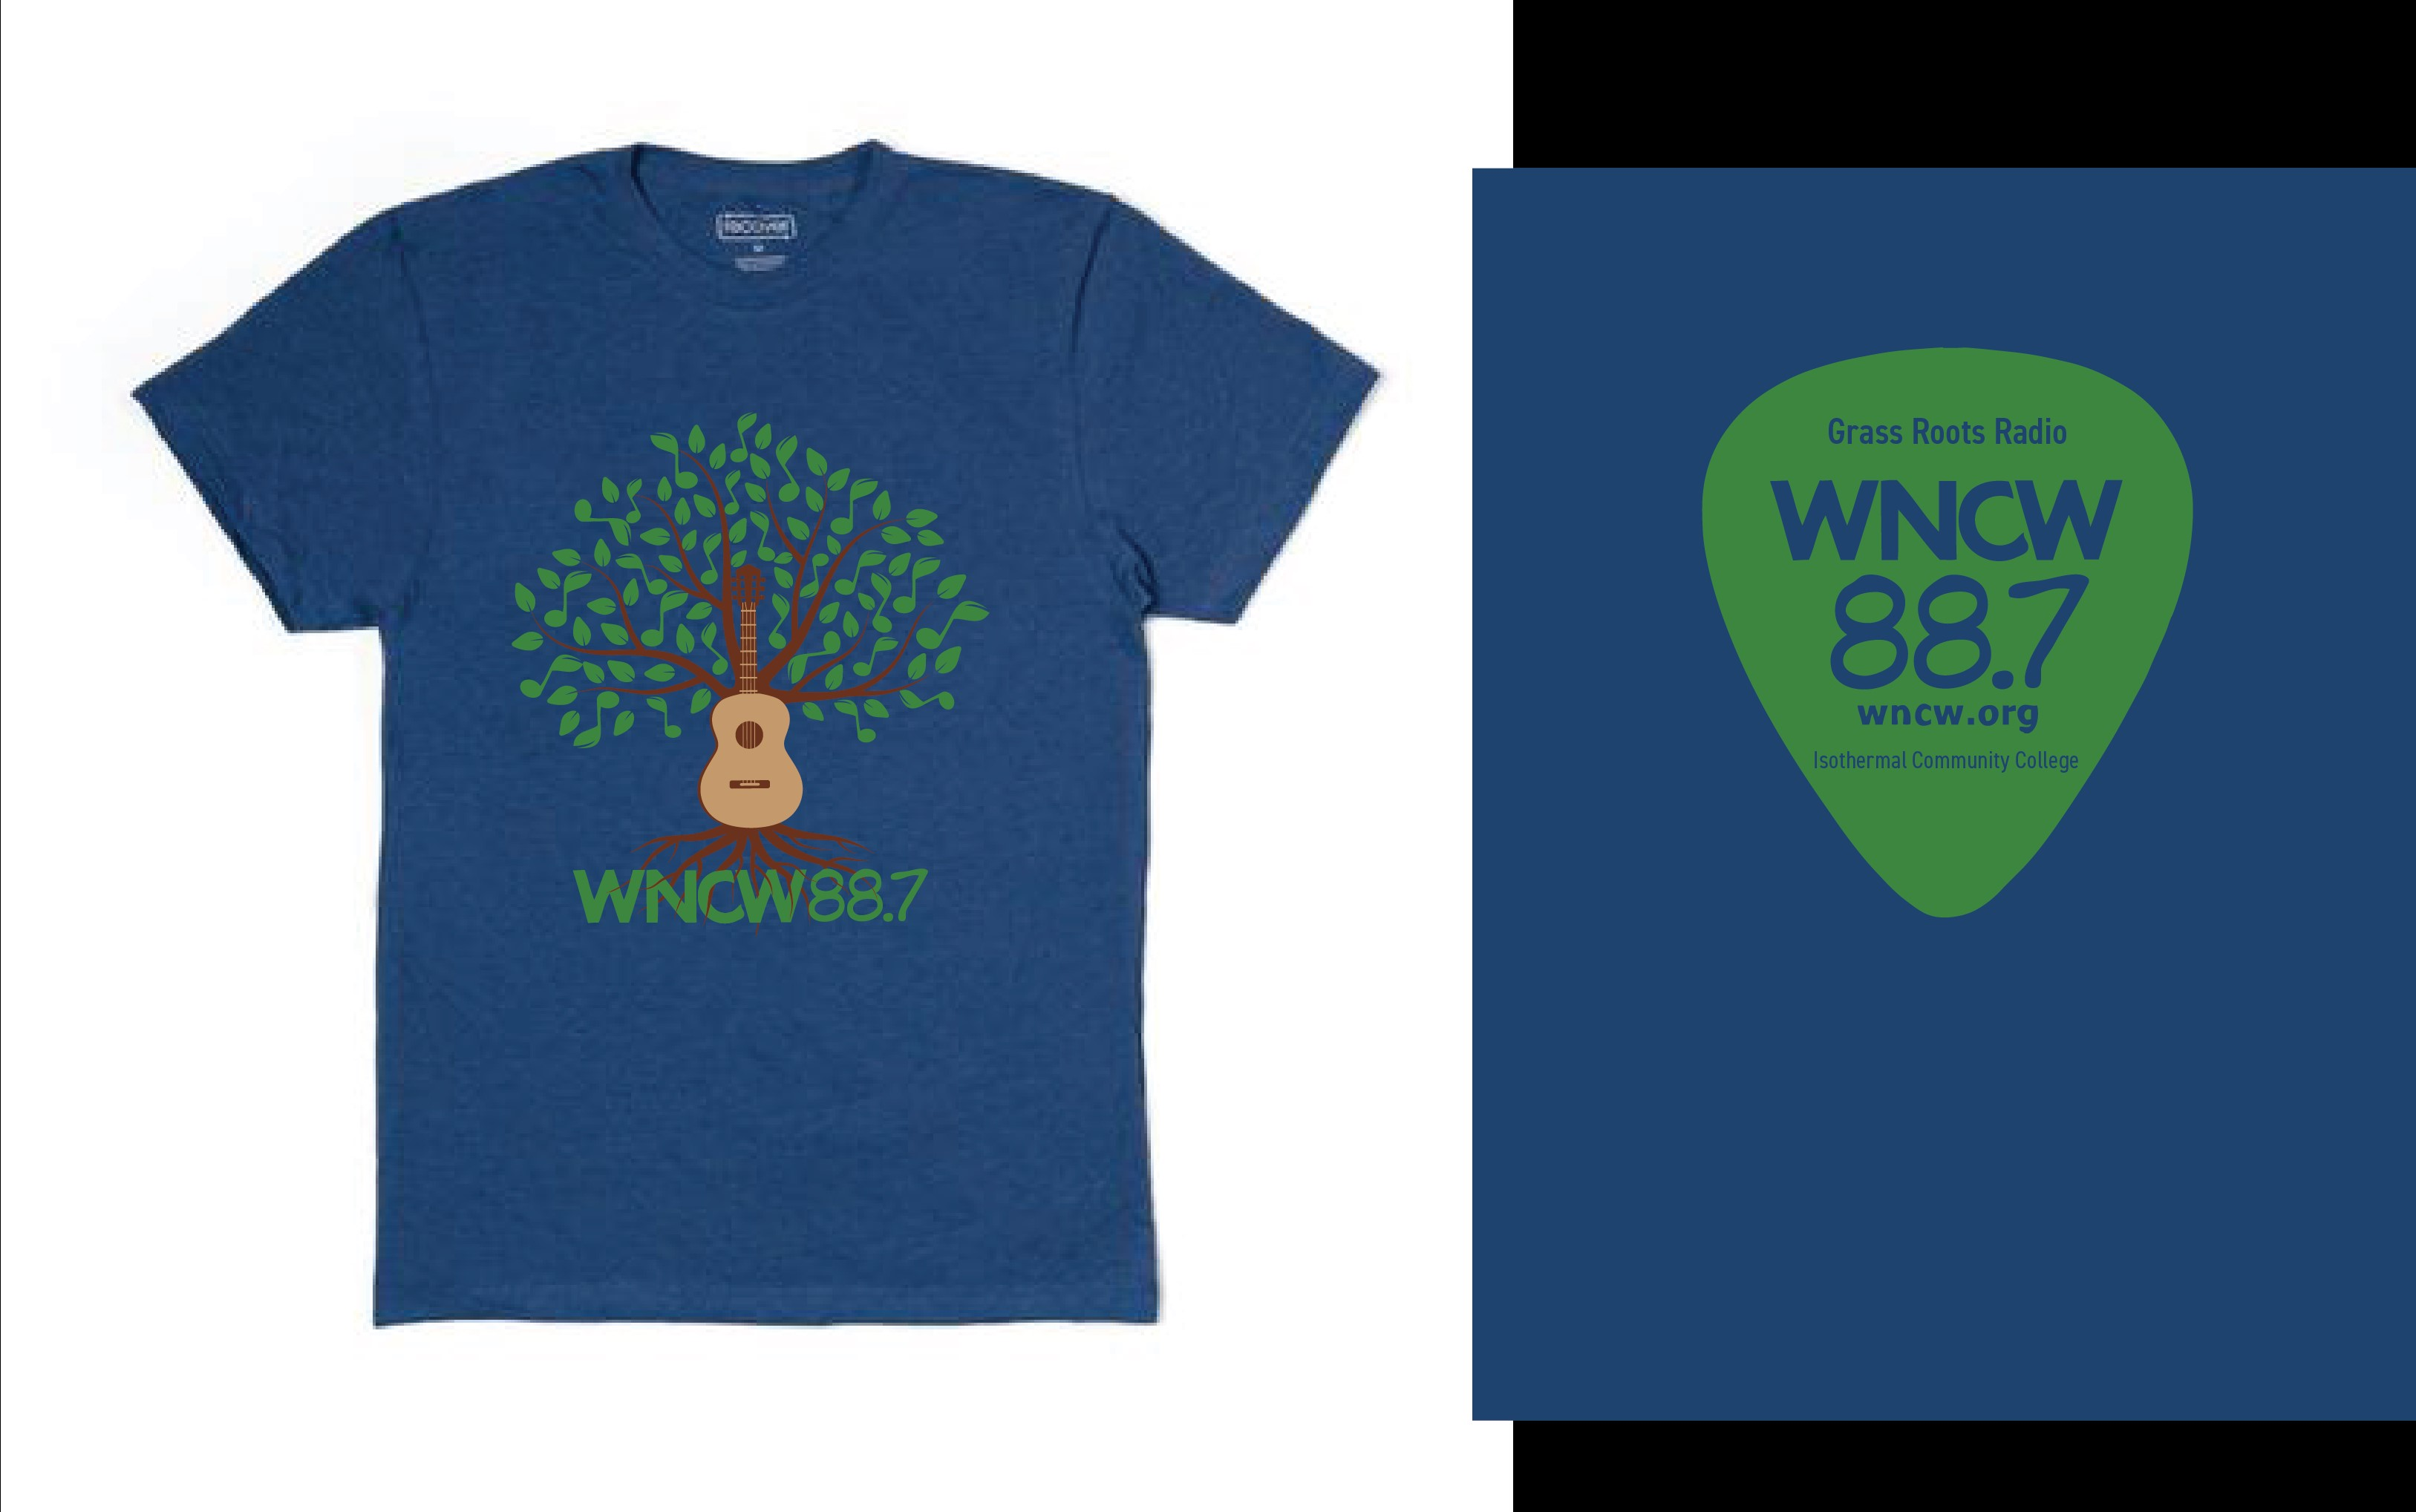 WNCW shirt with guitar tree logo